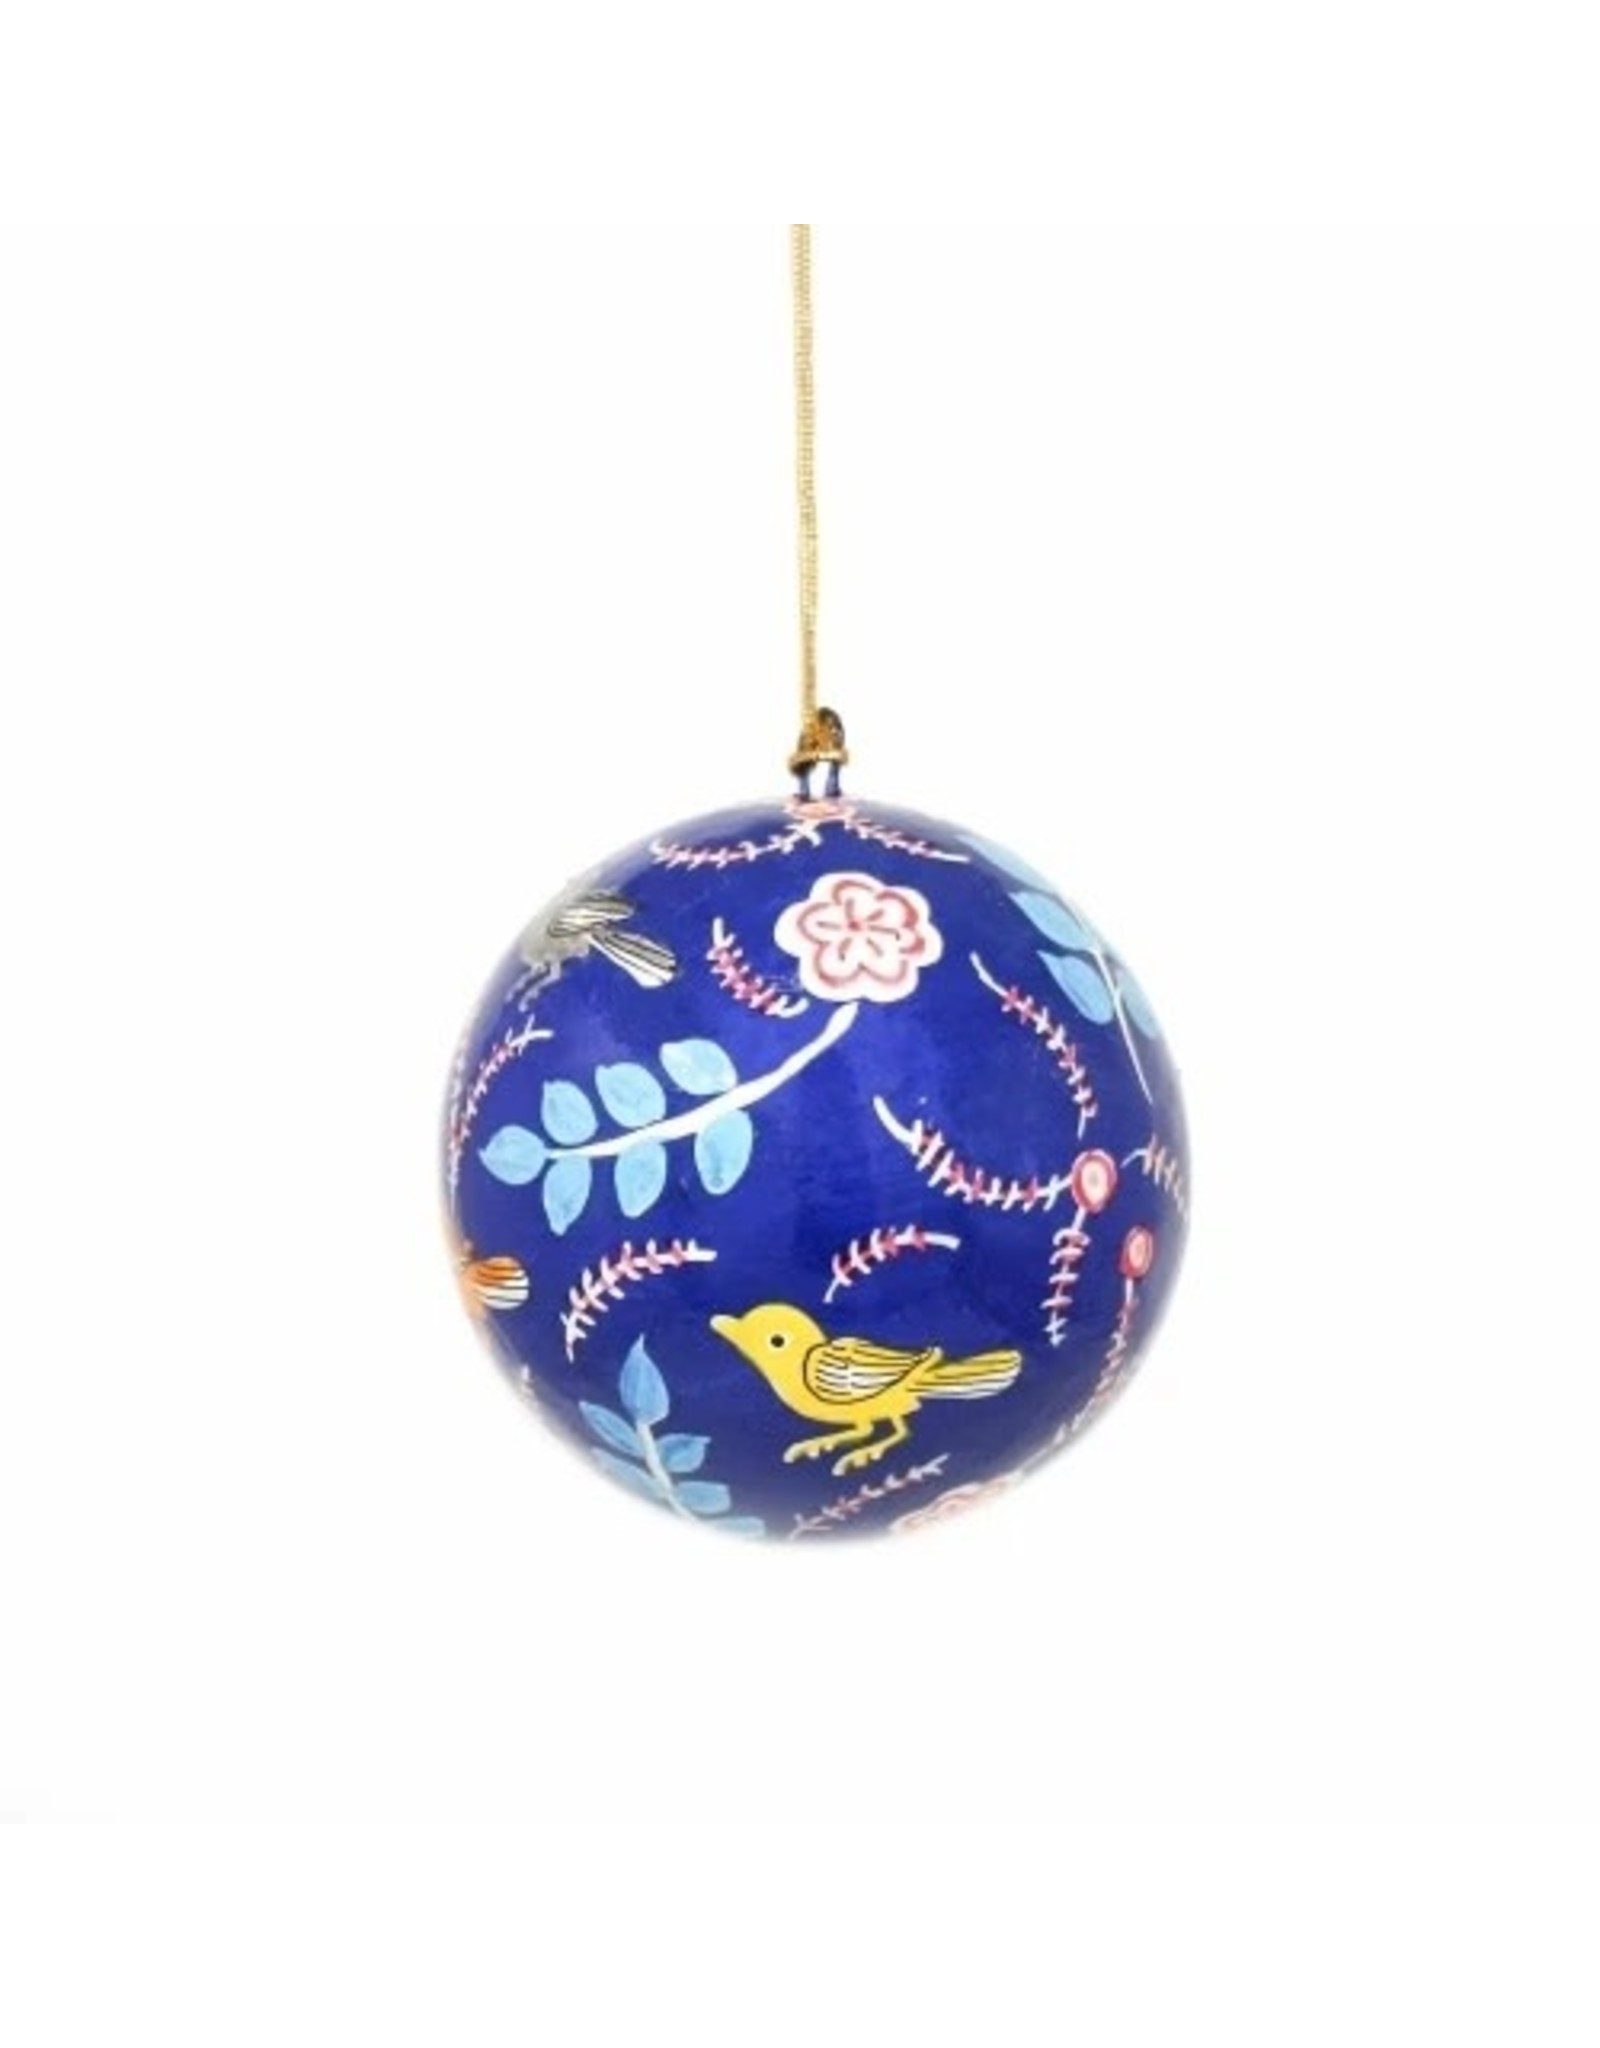 Global Crafts Handpainted Paper-Mache Ornament, Blue Birds